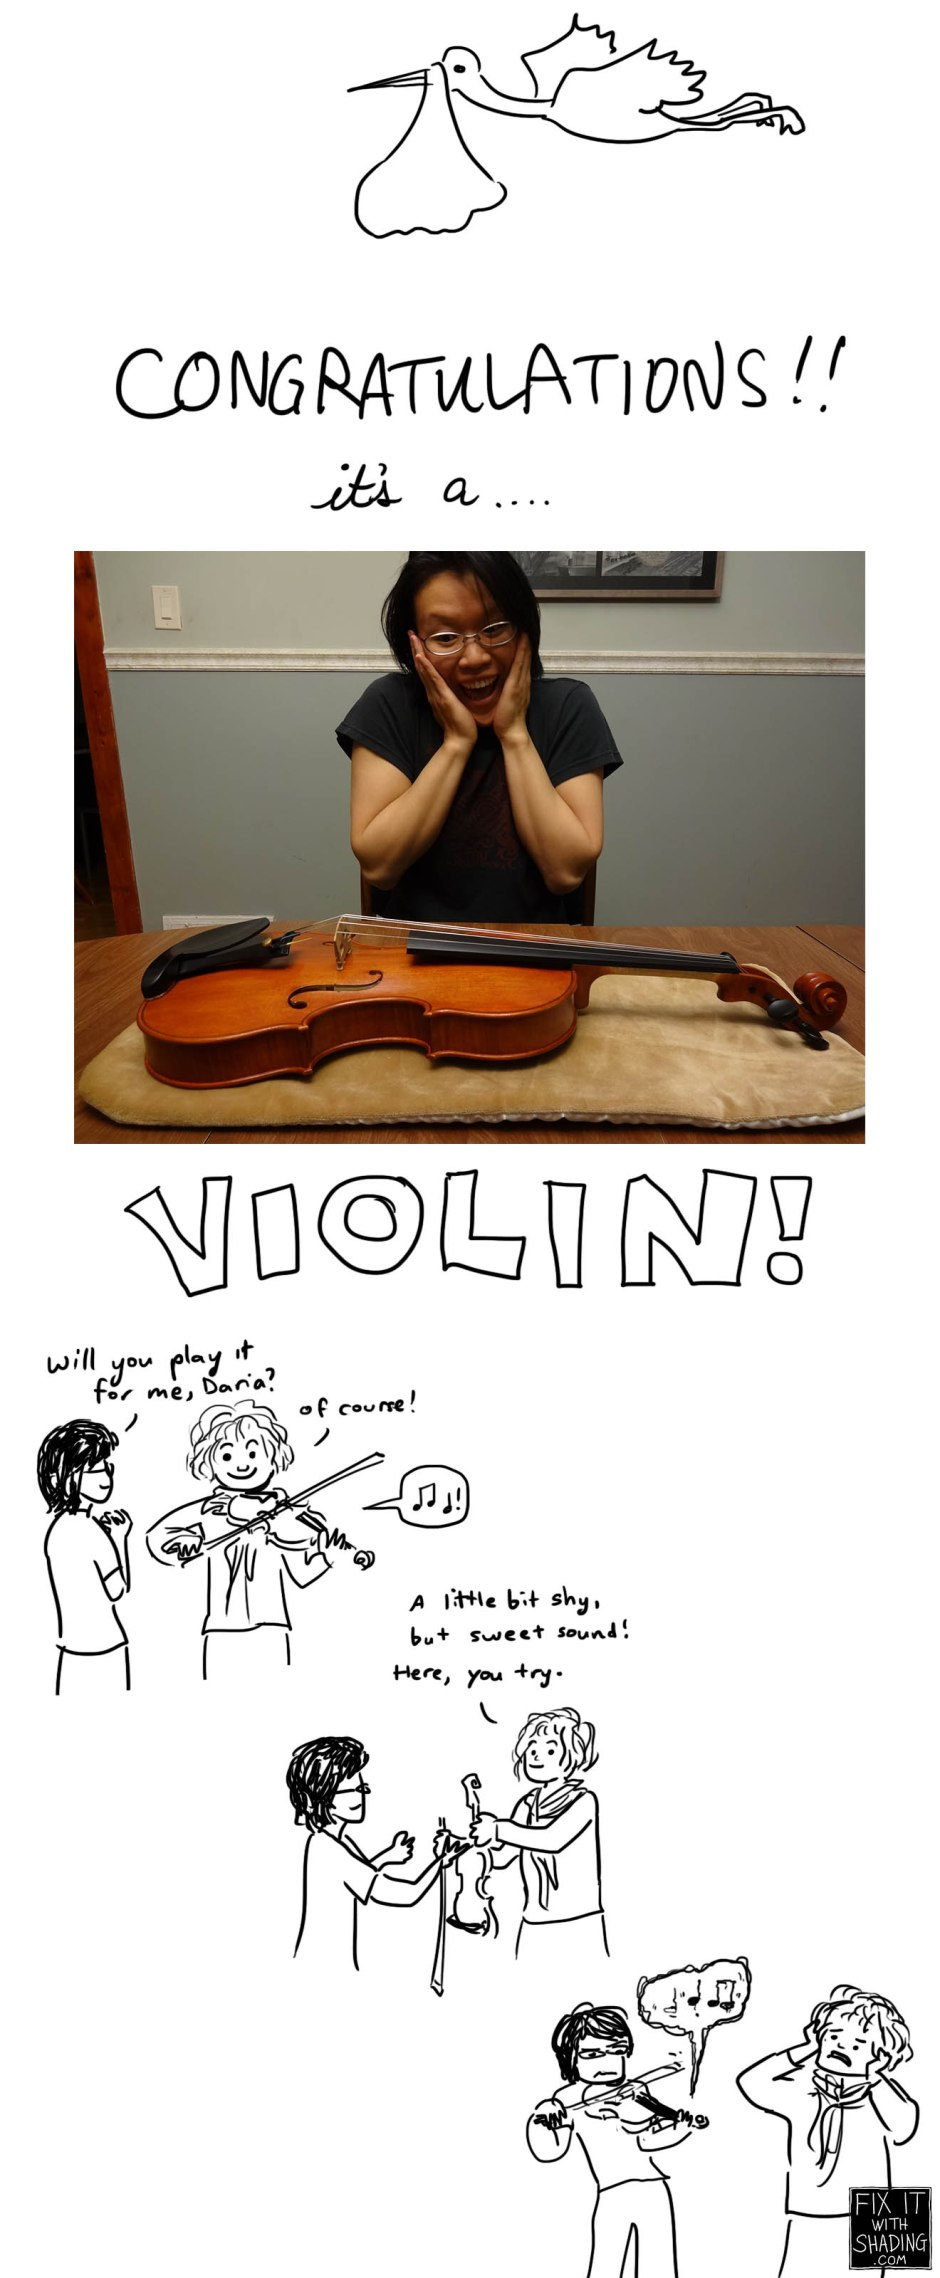 congratulations, it's a violin!